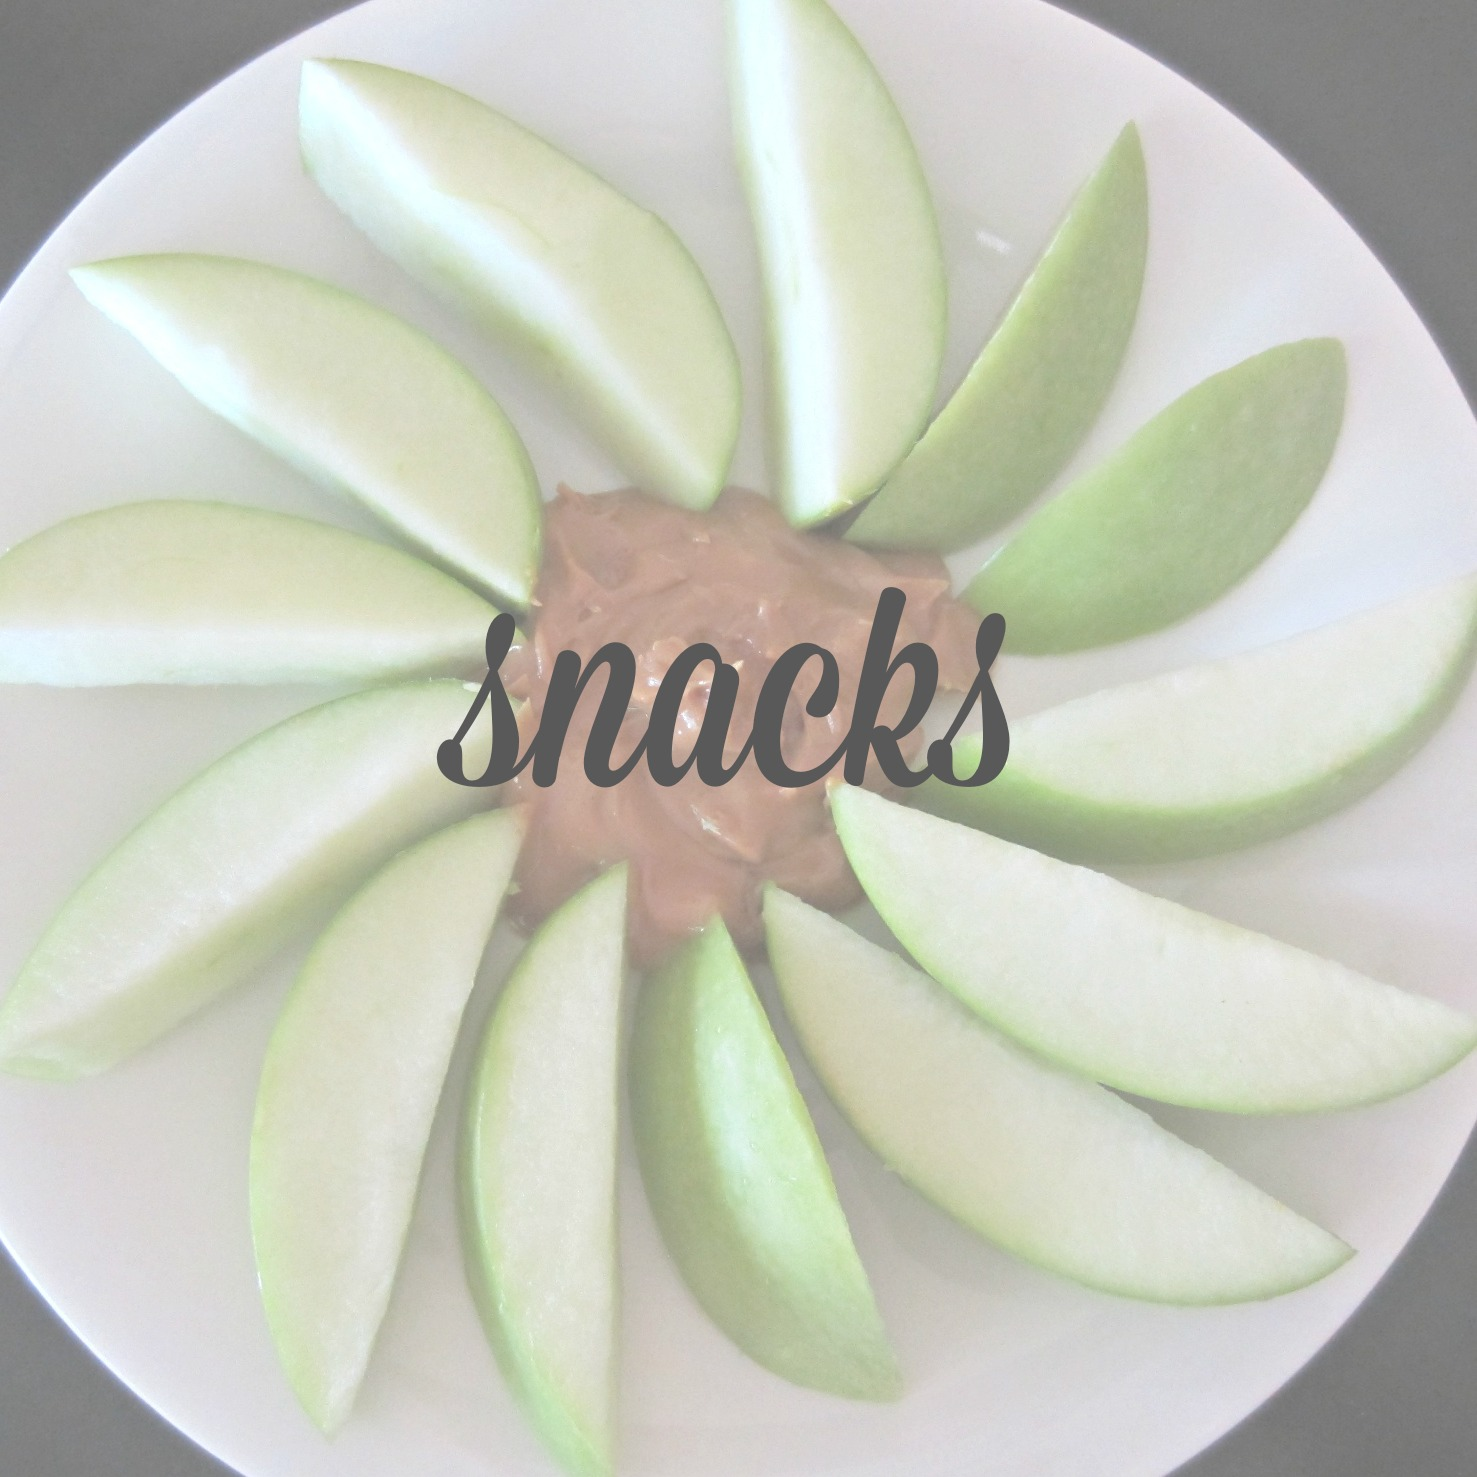 snacks page cover